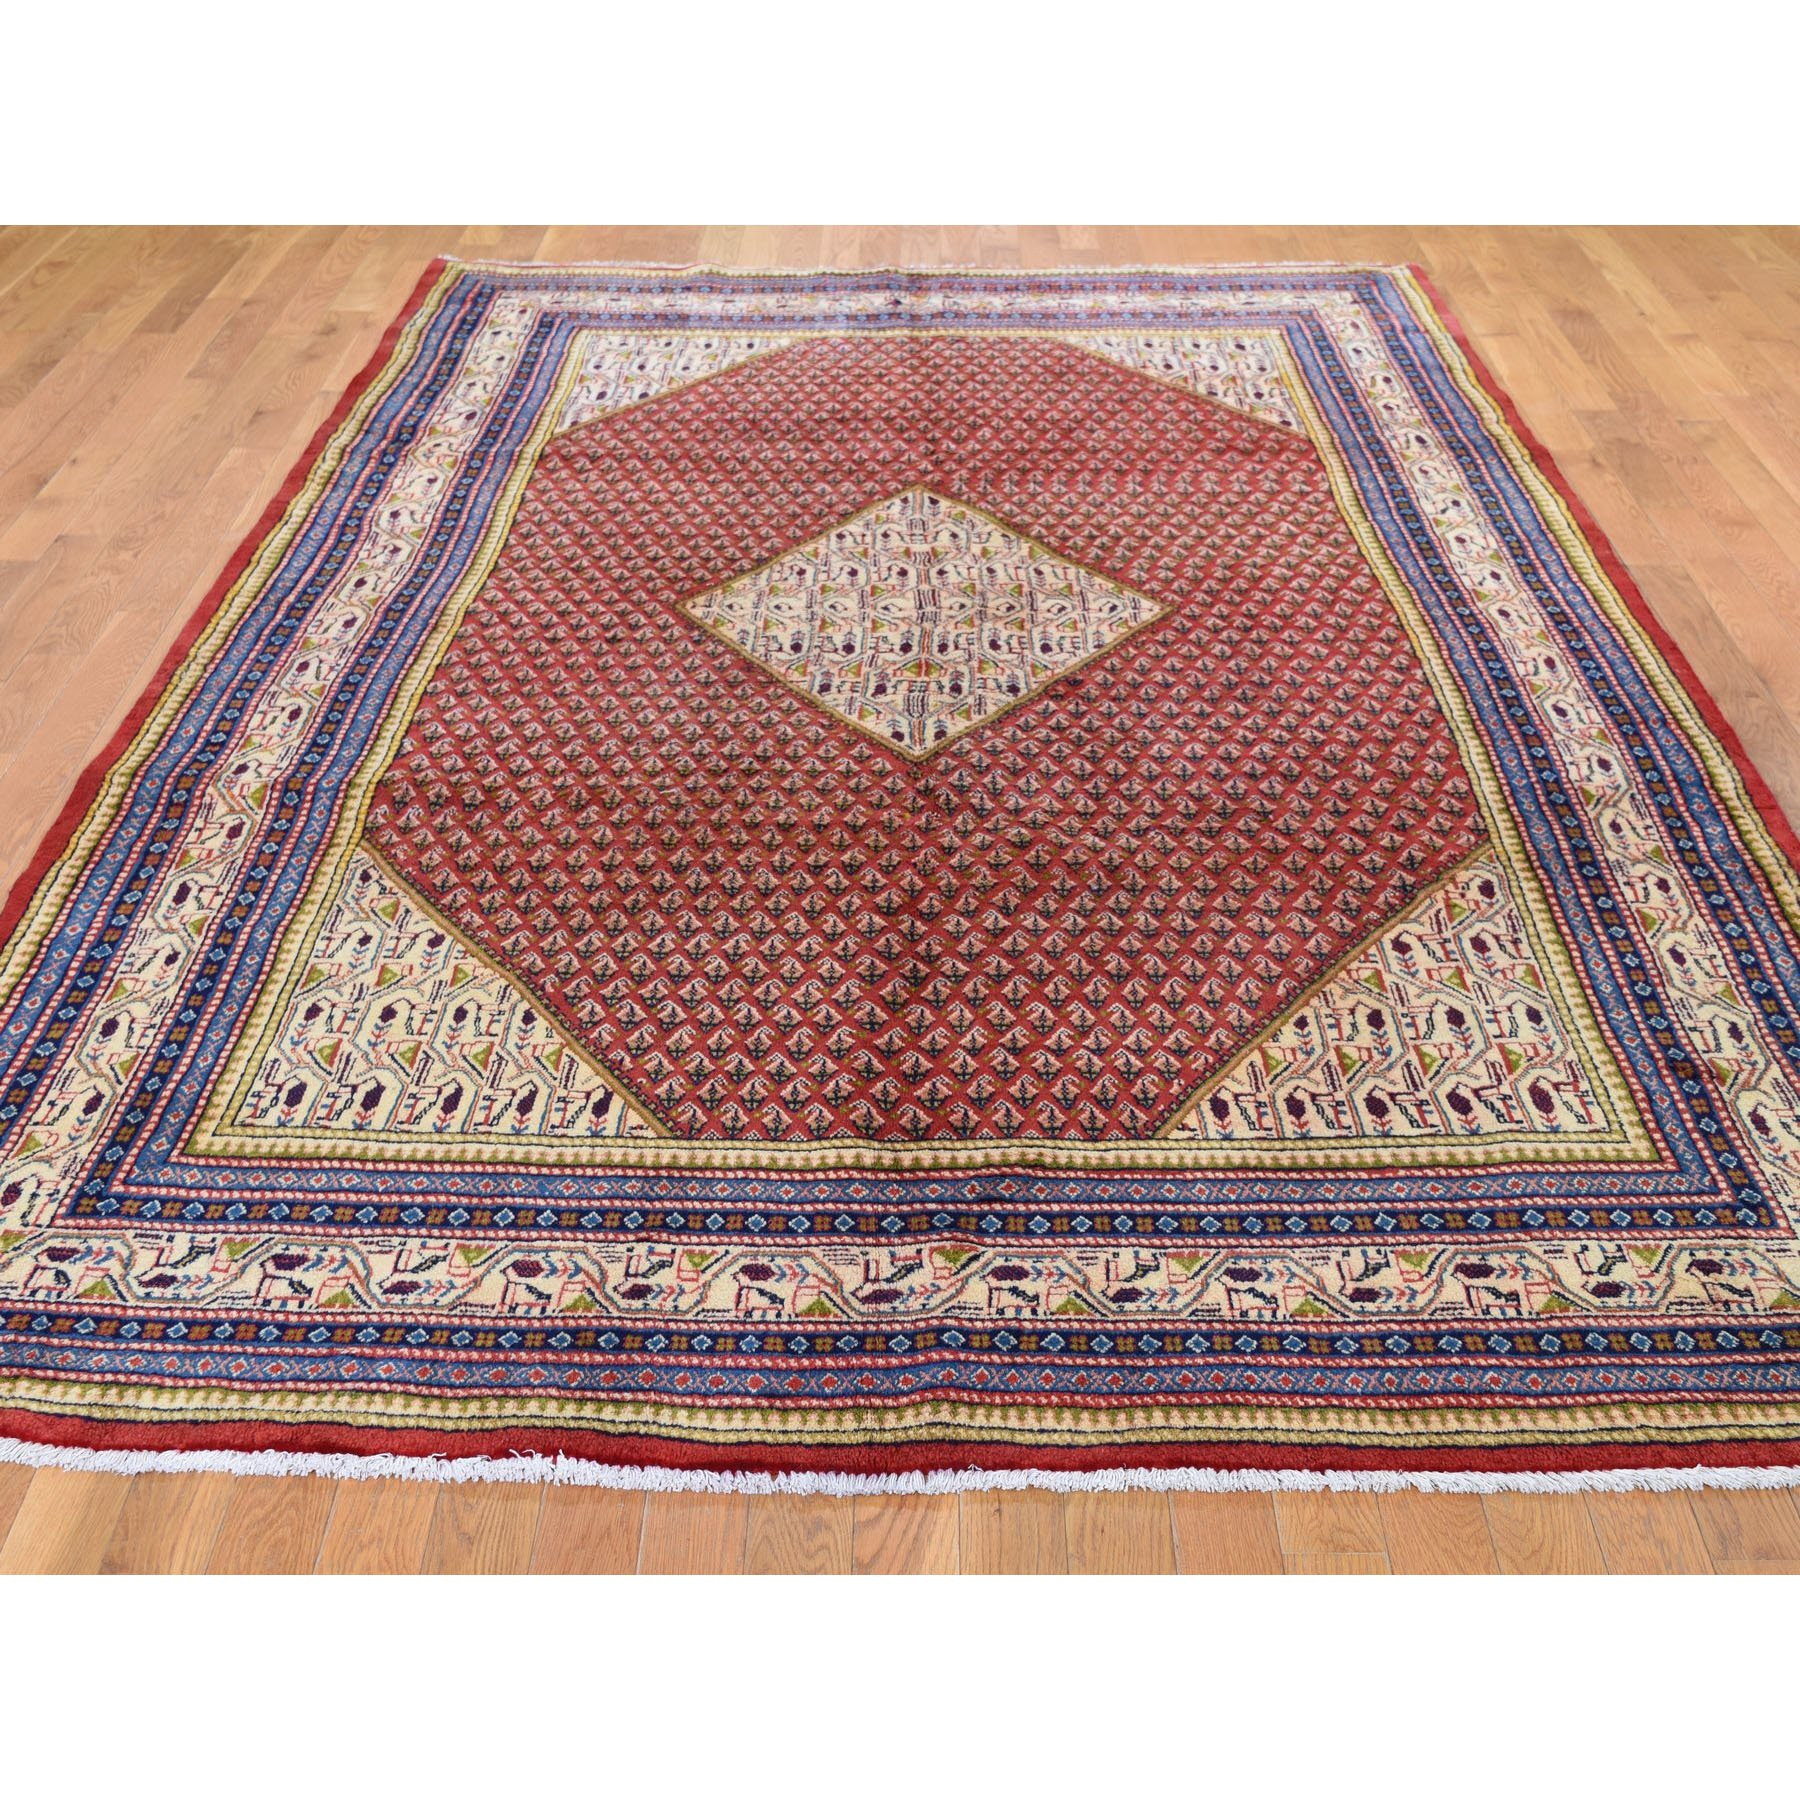 """6'7""""x10'2"""" Red New Persian Sarouk Mir Full Pile Pure Wool Small Design Hand Knotted Oriental Rug"""